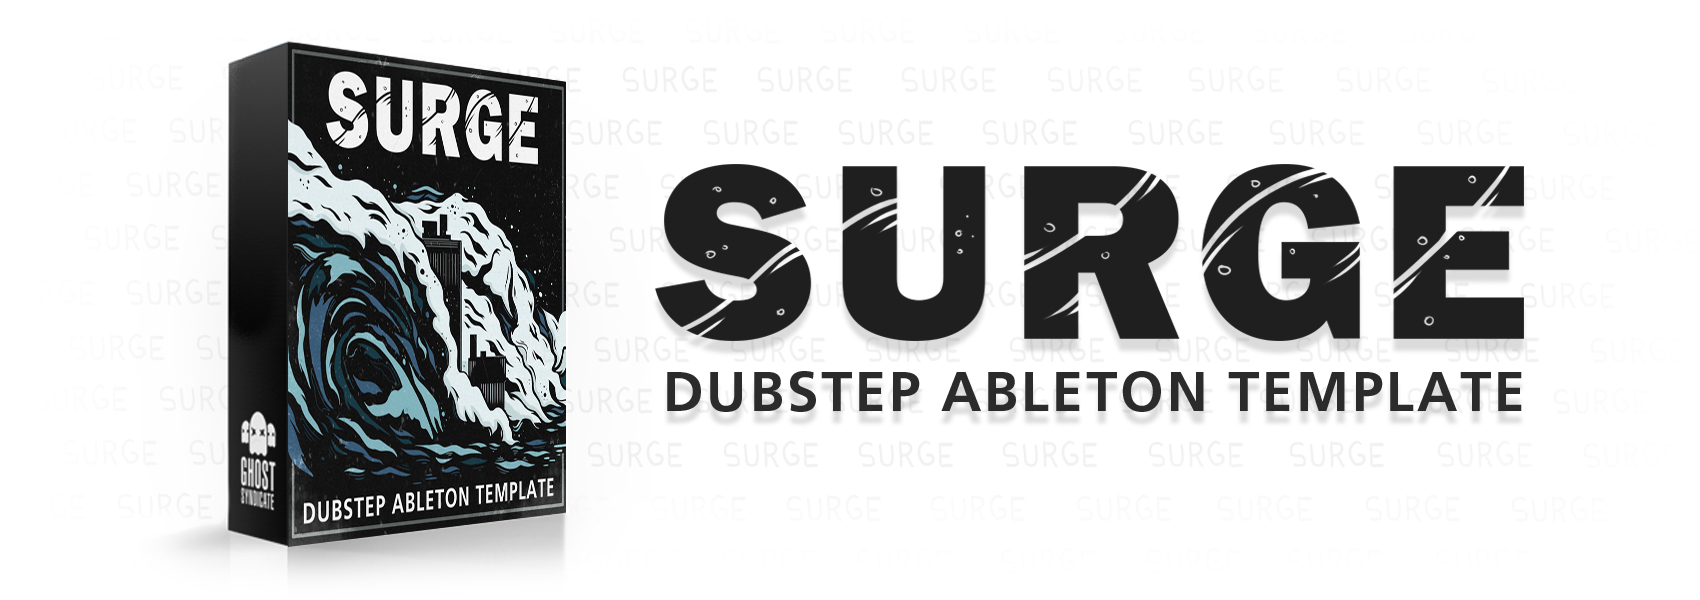 Surge, Ableton Live Template, Samples, Loops, One Shots, Dubstep, Ghost Syndicate